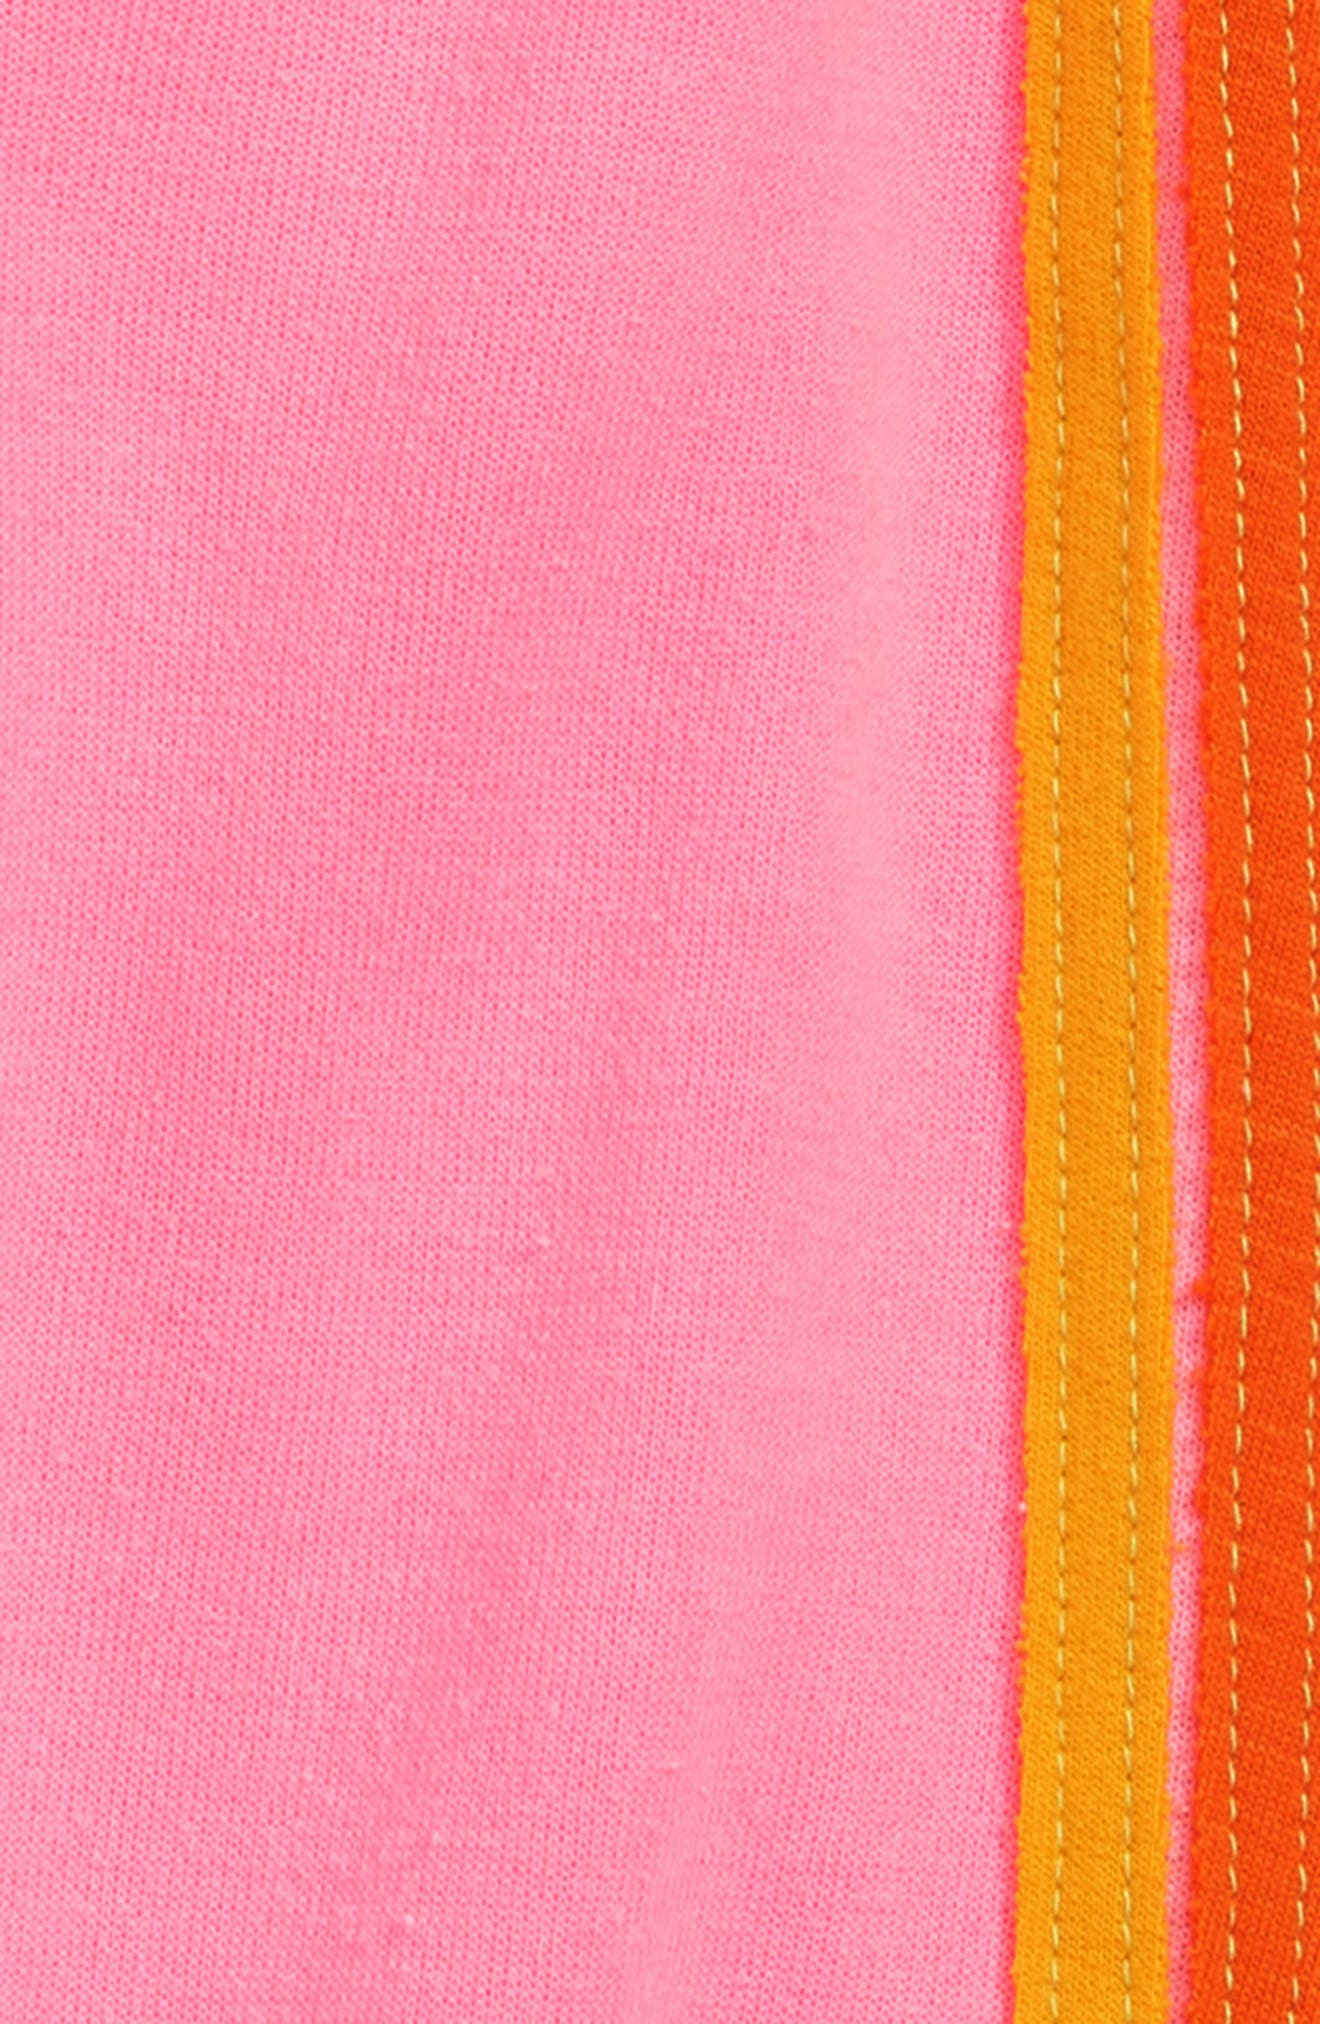 5-Stripe Sweatpants,                             Alternate thumbnail 3, color,                             NEON PINK